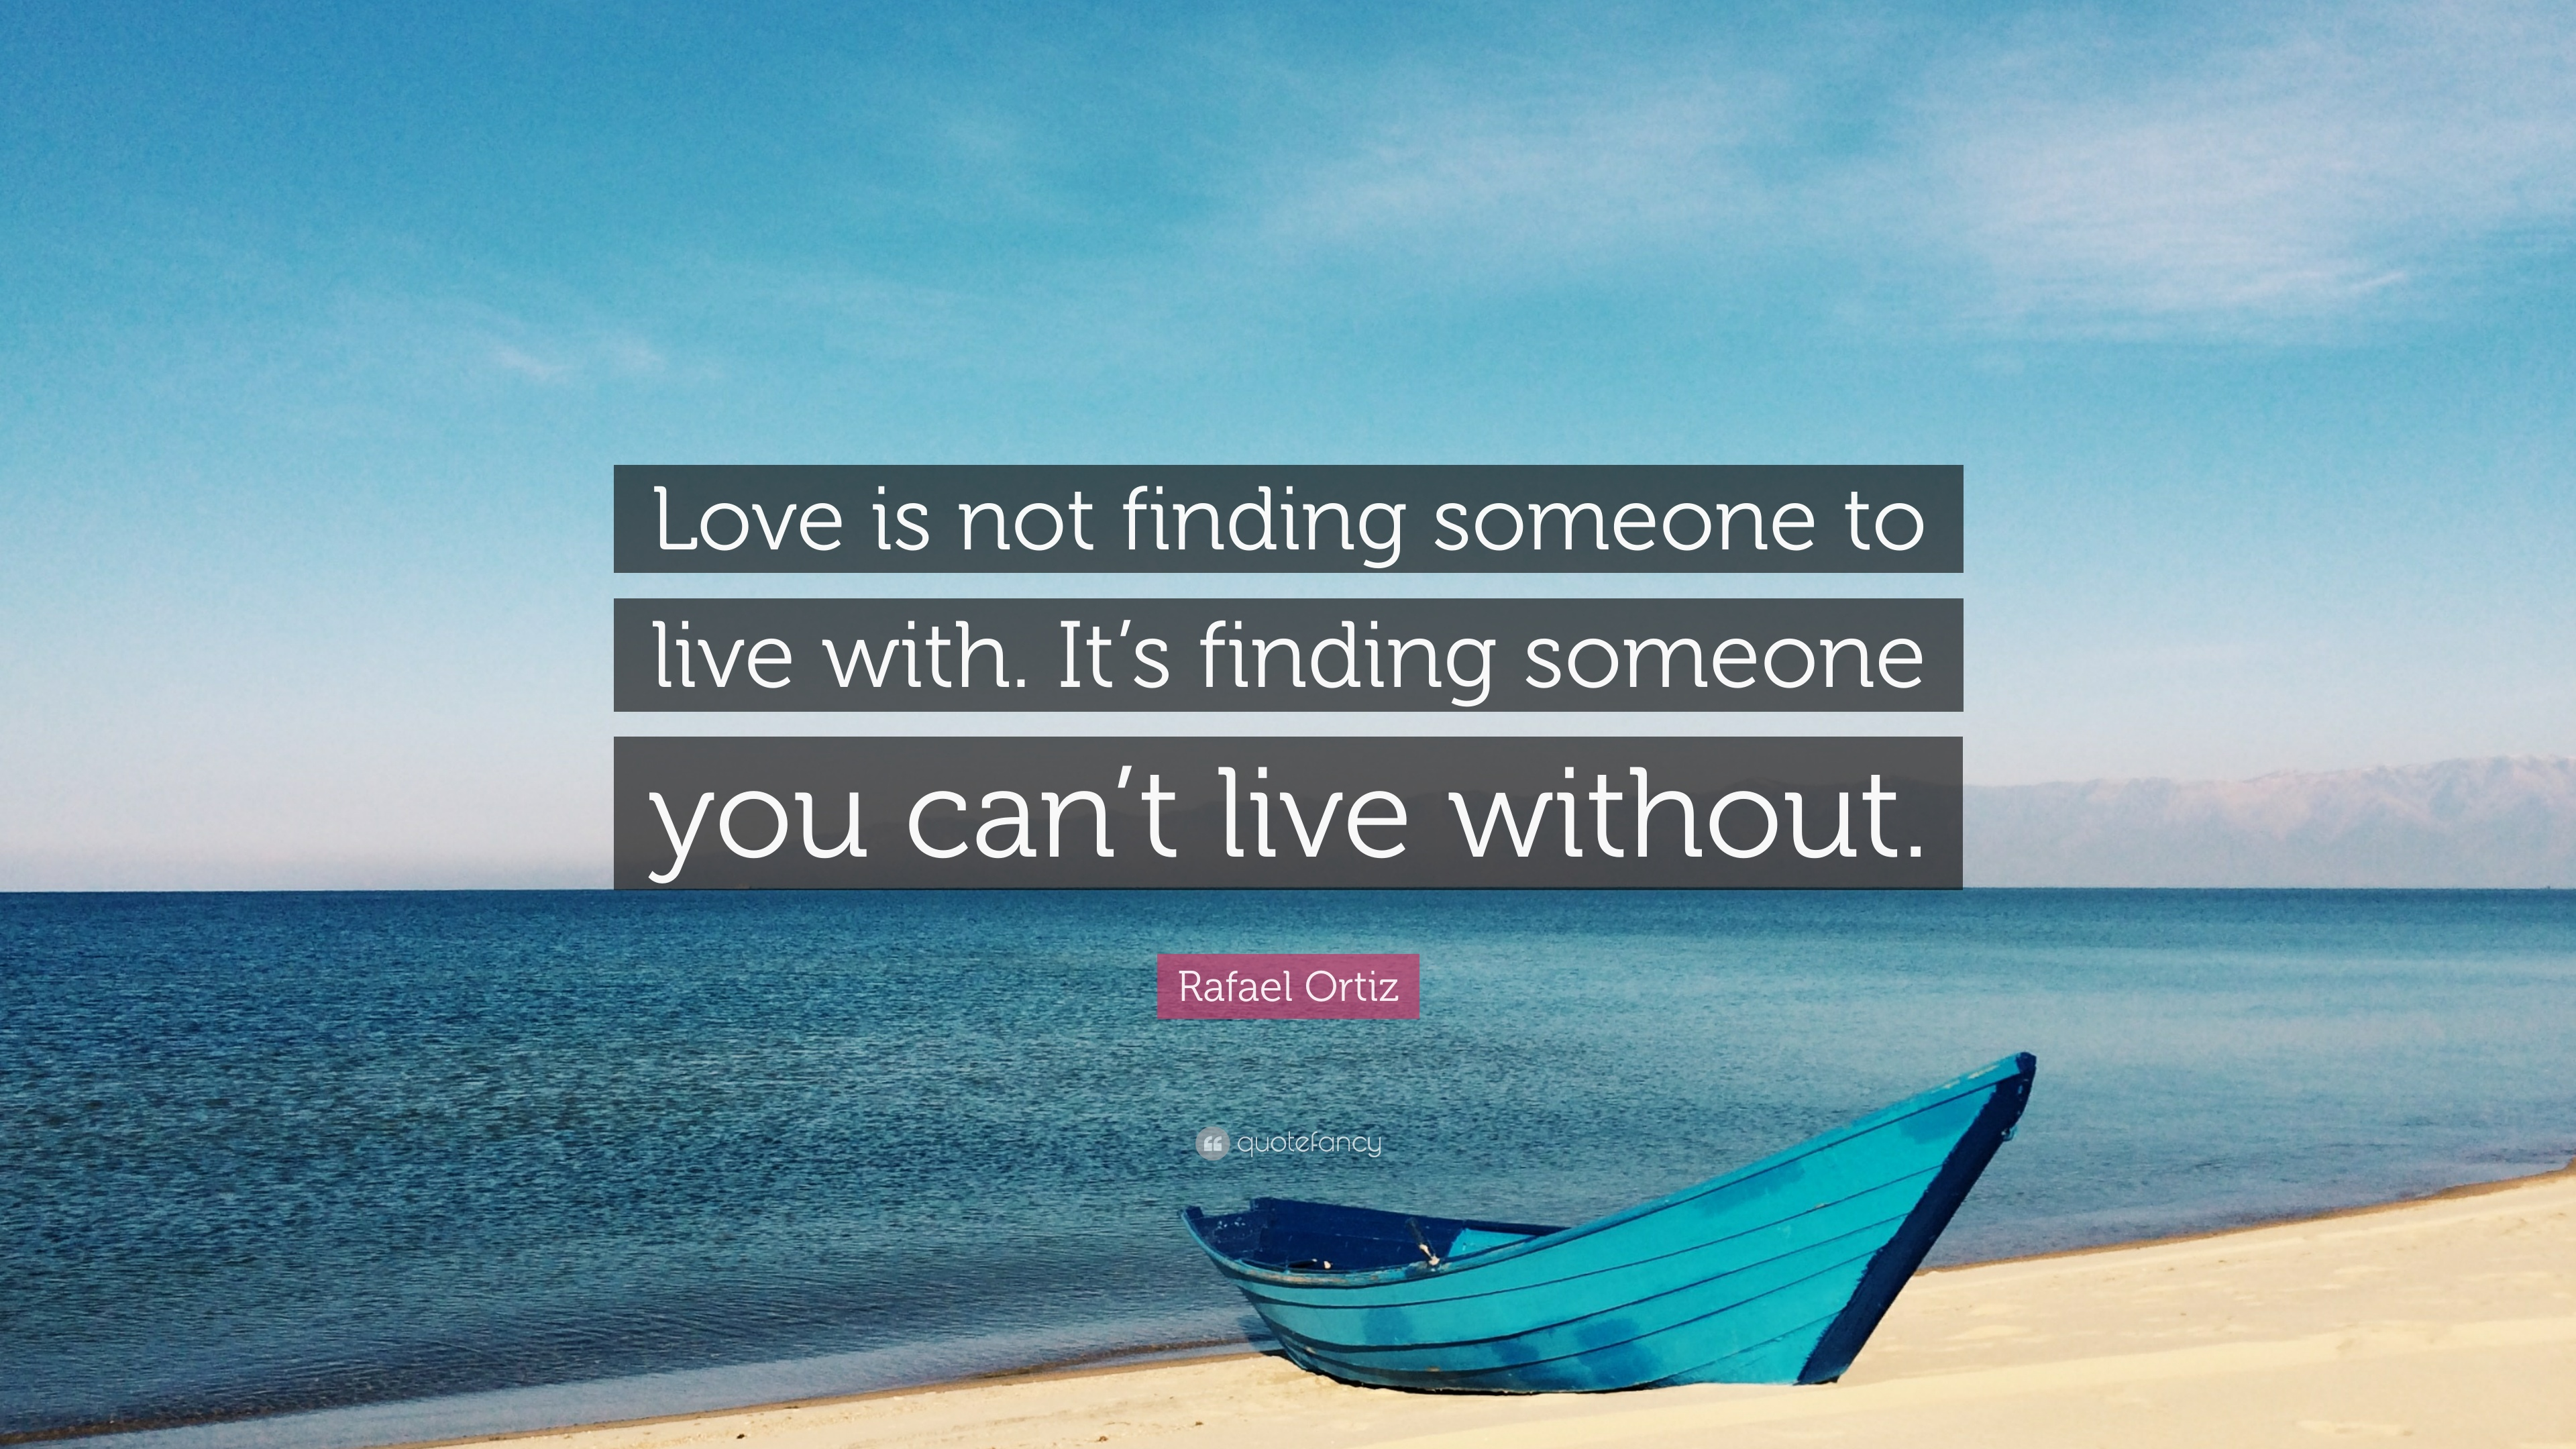 Love is finding someone